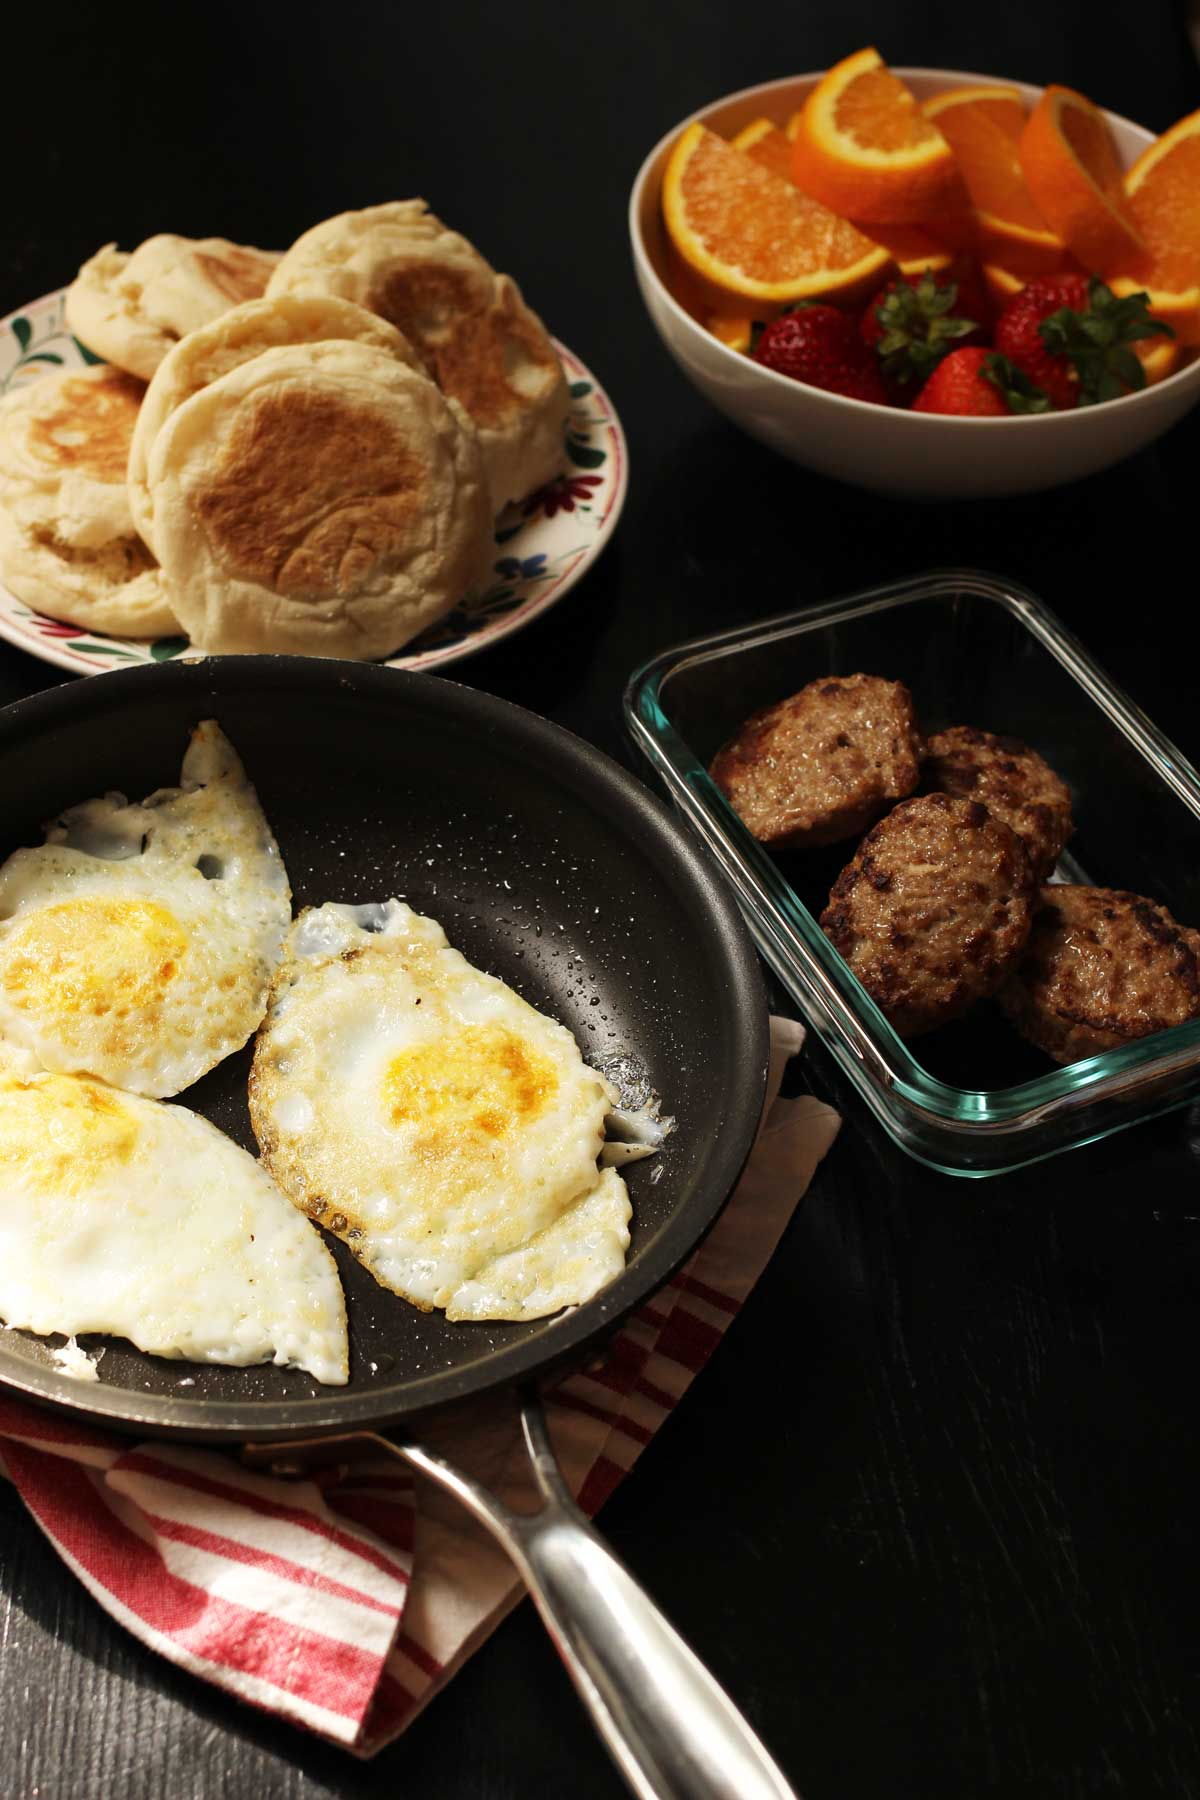 breakfast dishes set on table